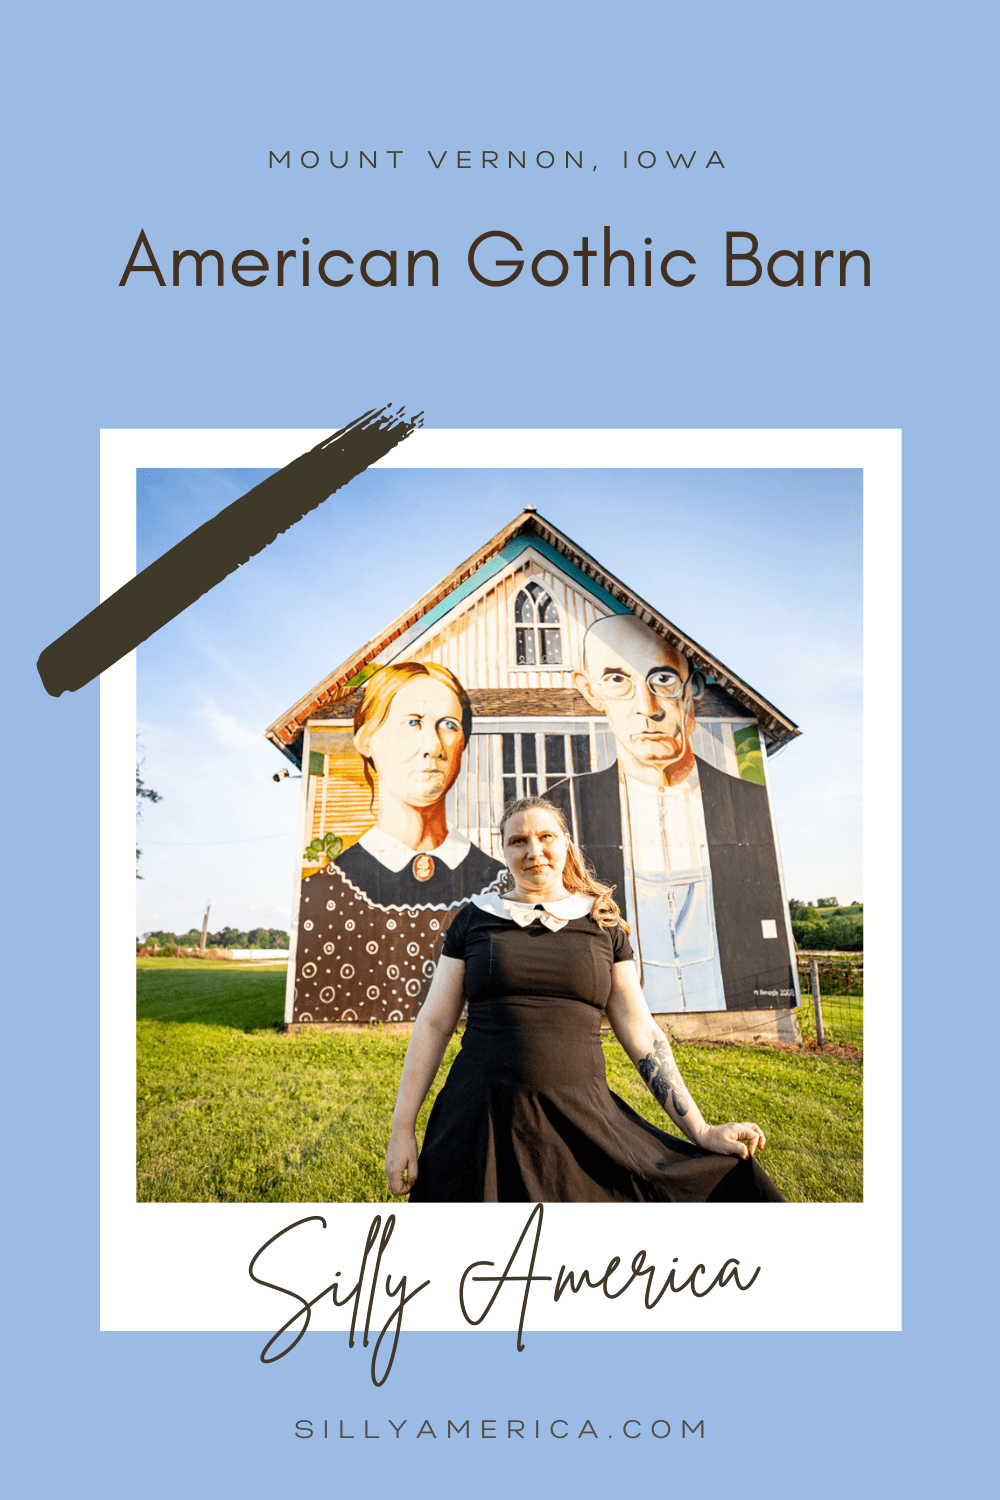 """Grant Wood's famous painting """"American Gothic"""" depicts a farmer and his daughter standing side by side in front of a farm house. The painting is oft reproduced, copied, and parodied and has inspired several roadside attractions. This, the American Gothic Barn in Mount Vernon, Iowa.  #IowaRoadsideAttractions #IowaRoadsideAttraction #RoadsideAttractions #RoadsideAttraction #RoadTrip #IowaRoadTrip #IowaThingsToDo #IowaRoadTripBucketLists #IowaBucketList #IowaRoadTripIdeas #IowaTravel"""